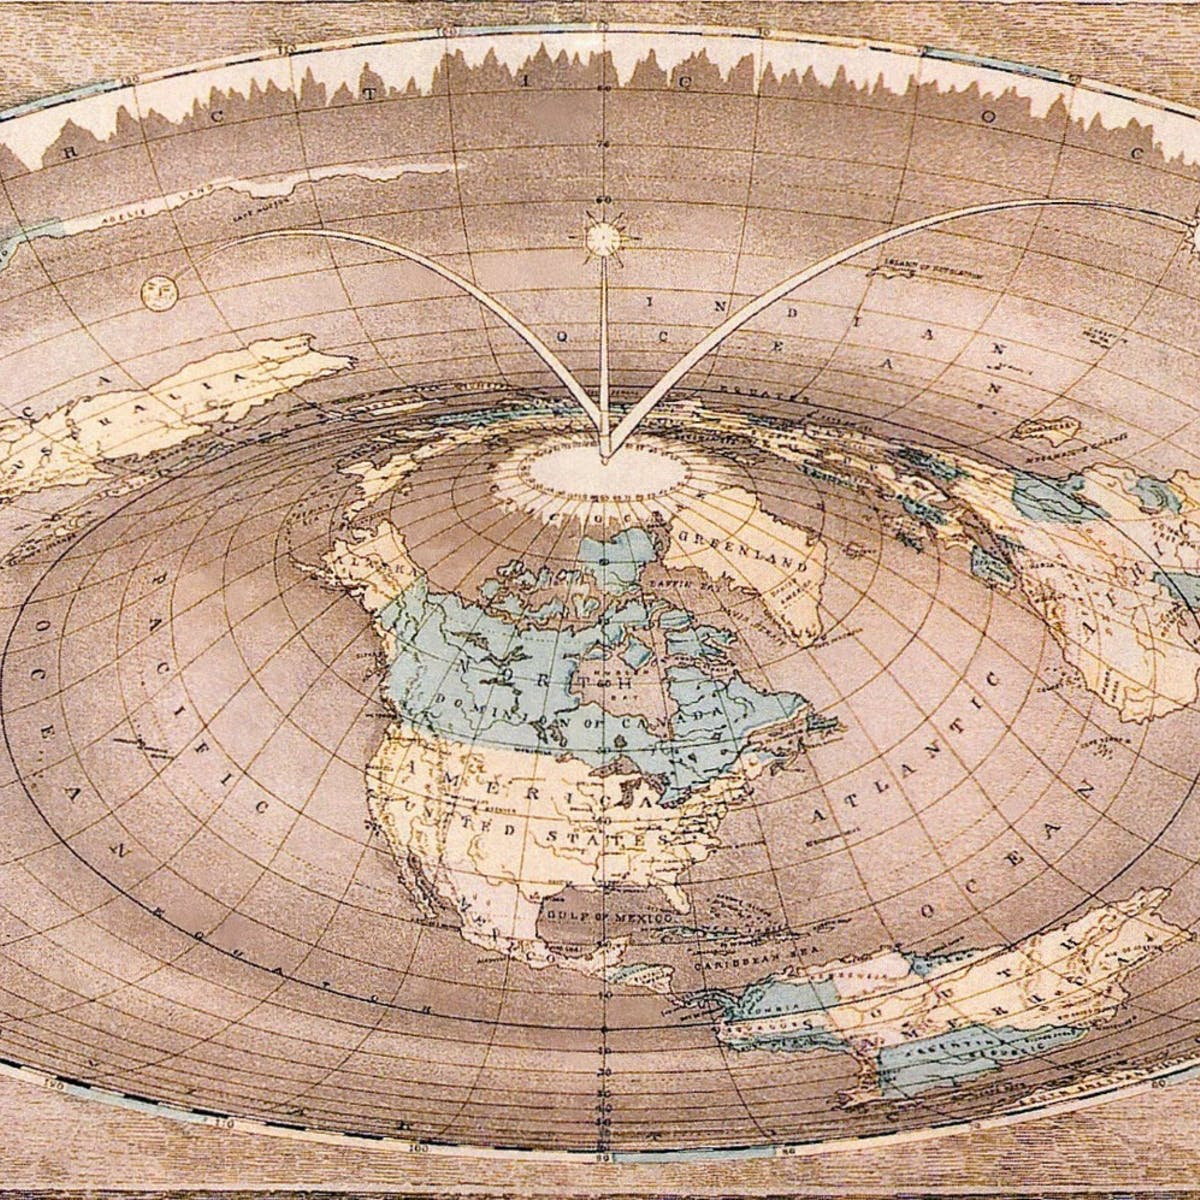 Flat wrong: the misunderstood history of flat Earth theories on earth map asia, photographs of europe, earth map australia, earth u.s. map, art of europe, earth map region, road maps of europe, earth map usa, earth map new zealand, earth map america, travel maps of europe, earth map united states,